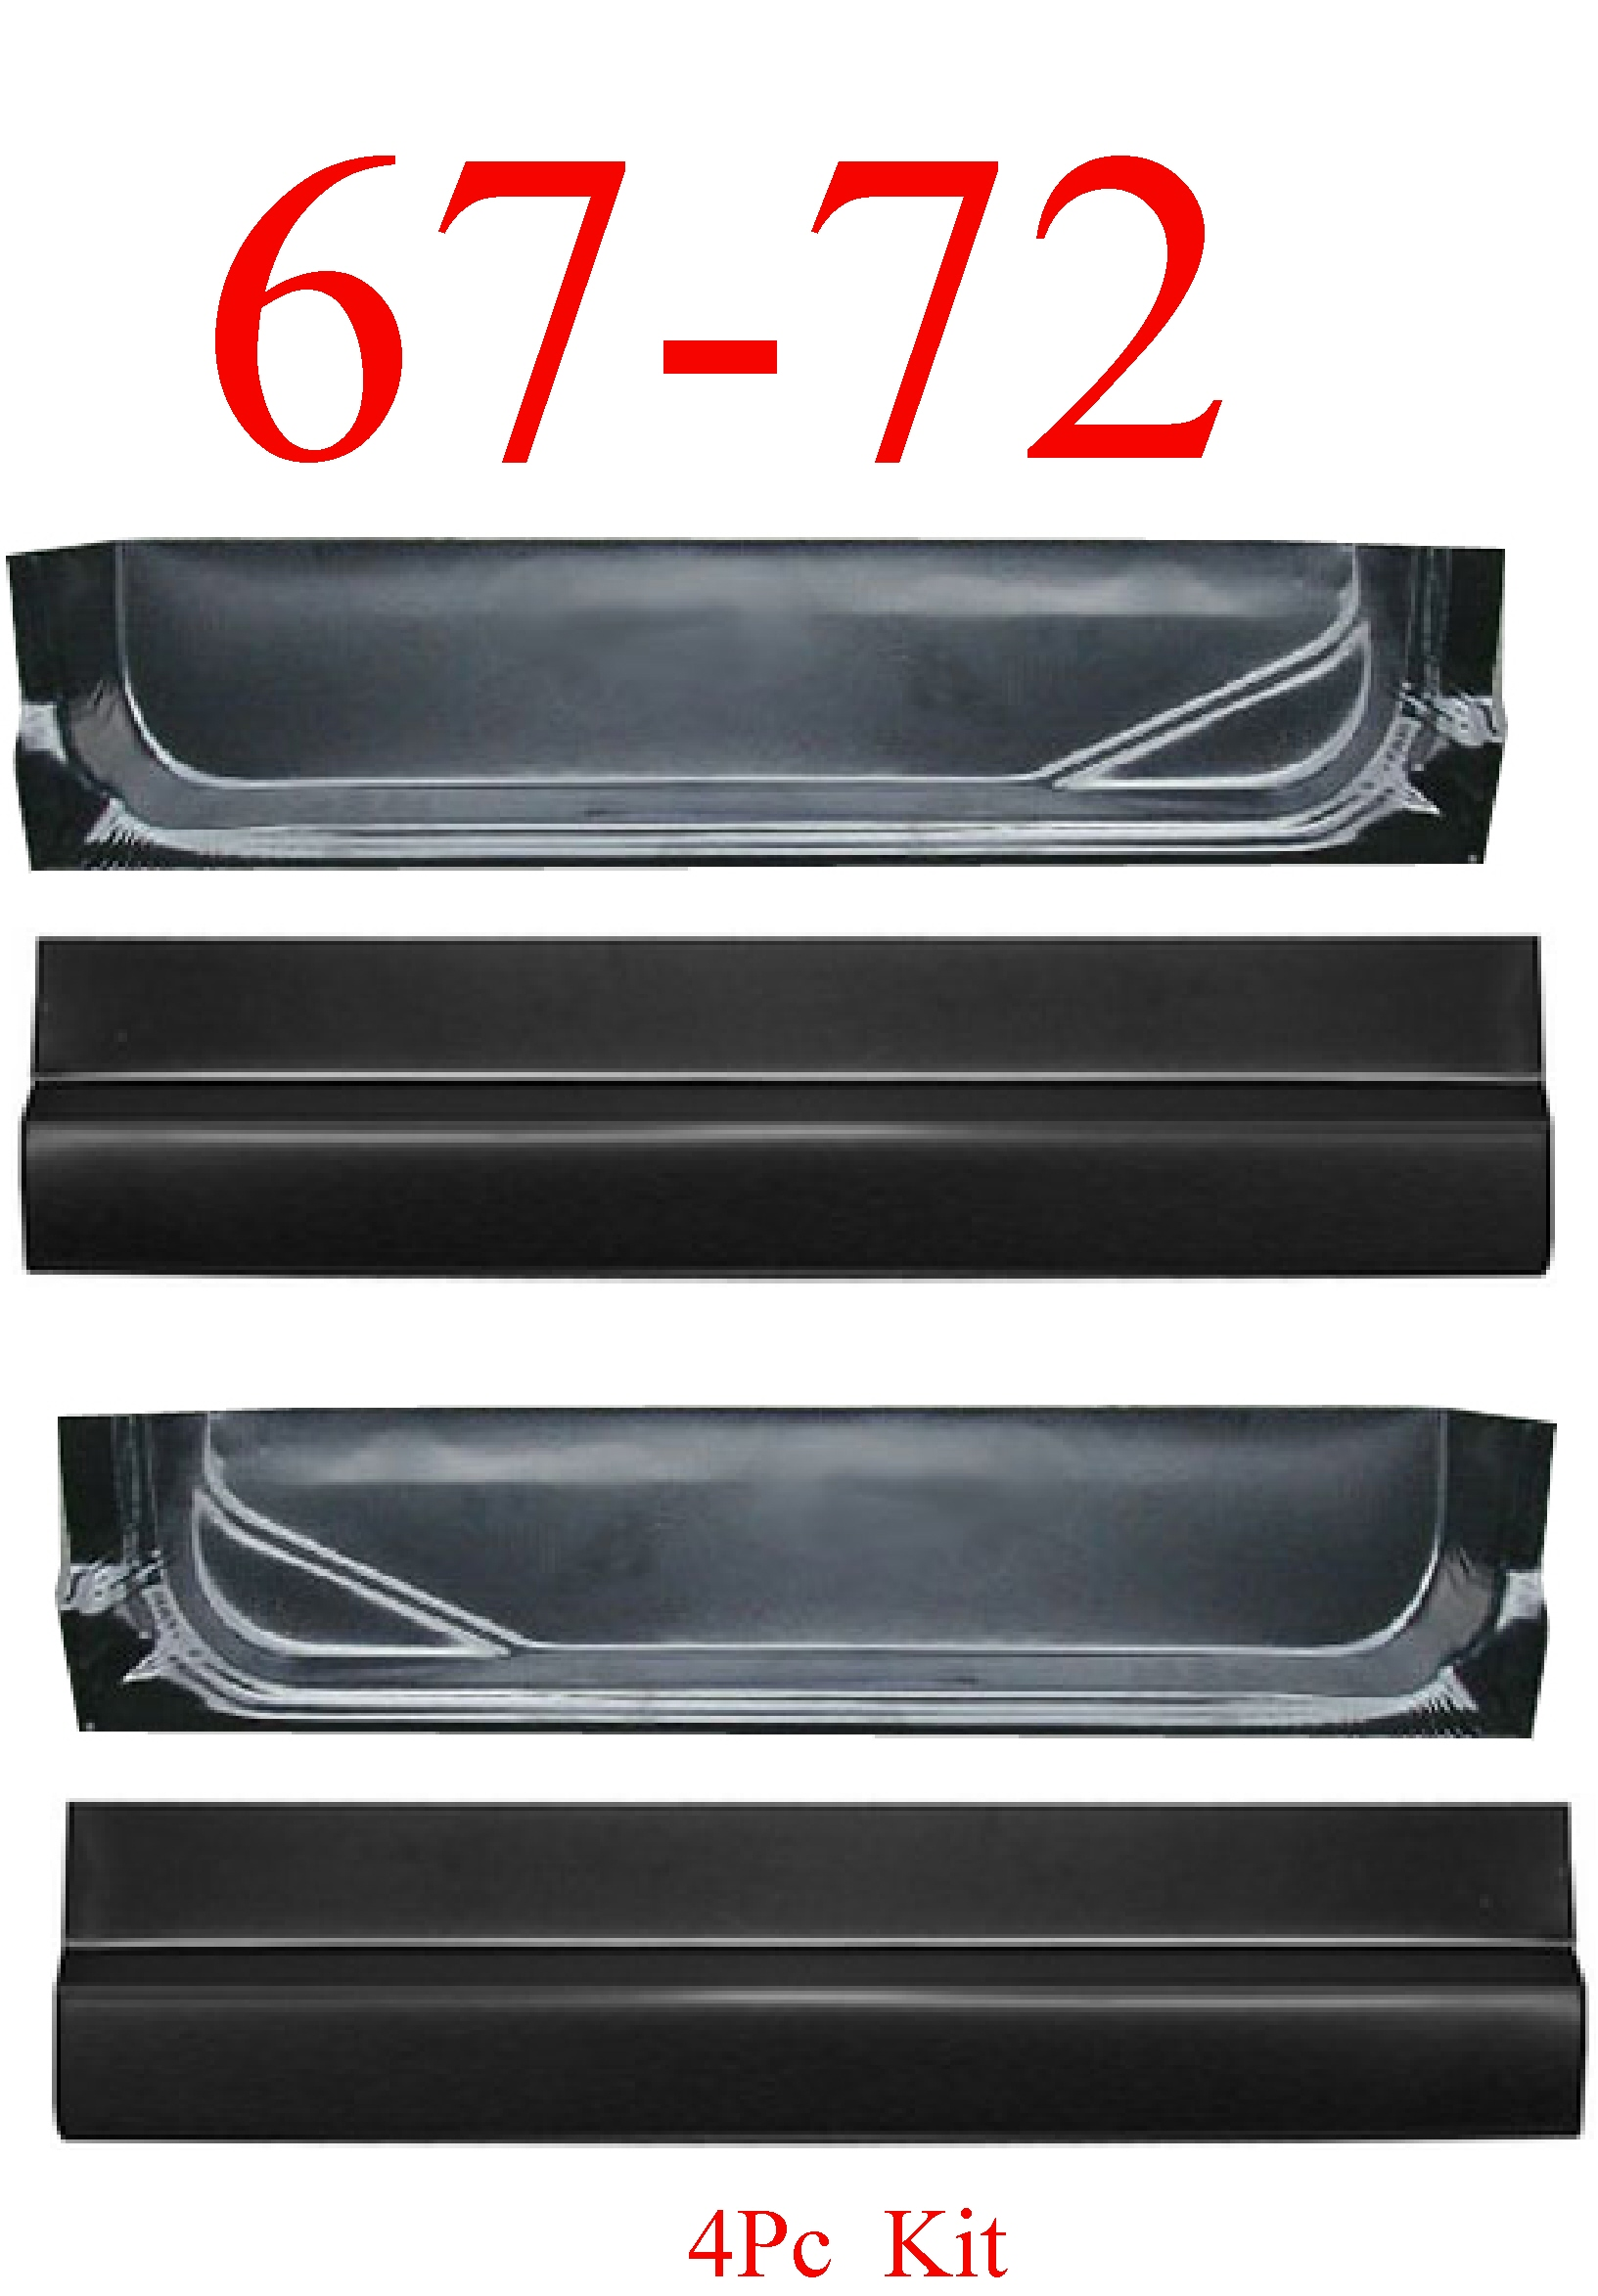 67-72 Ford 4Pc Door Skin & Inner Bottom Kit